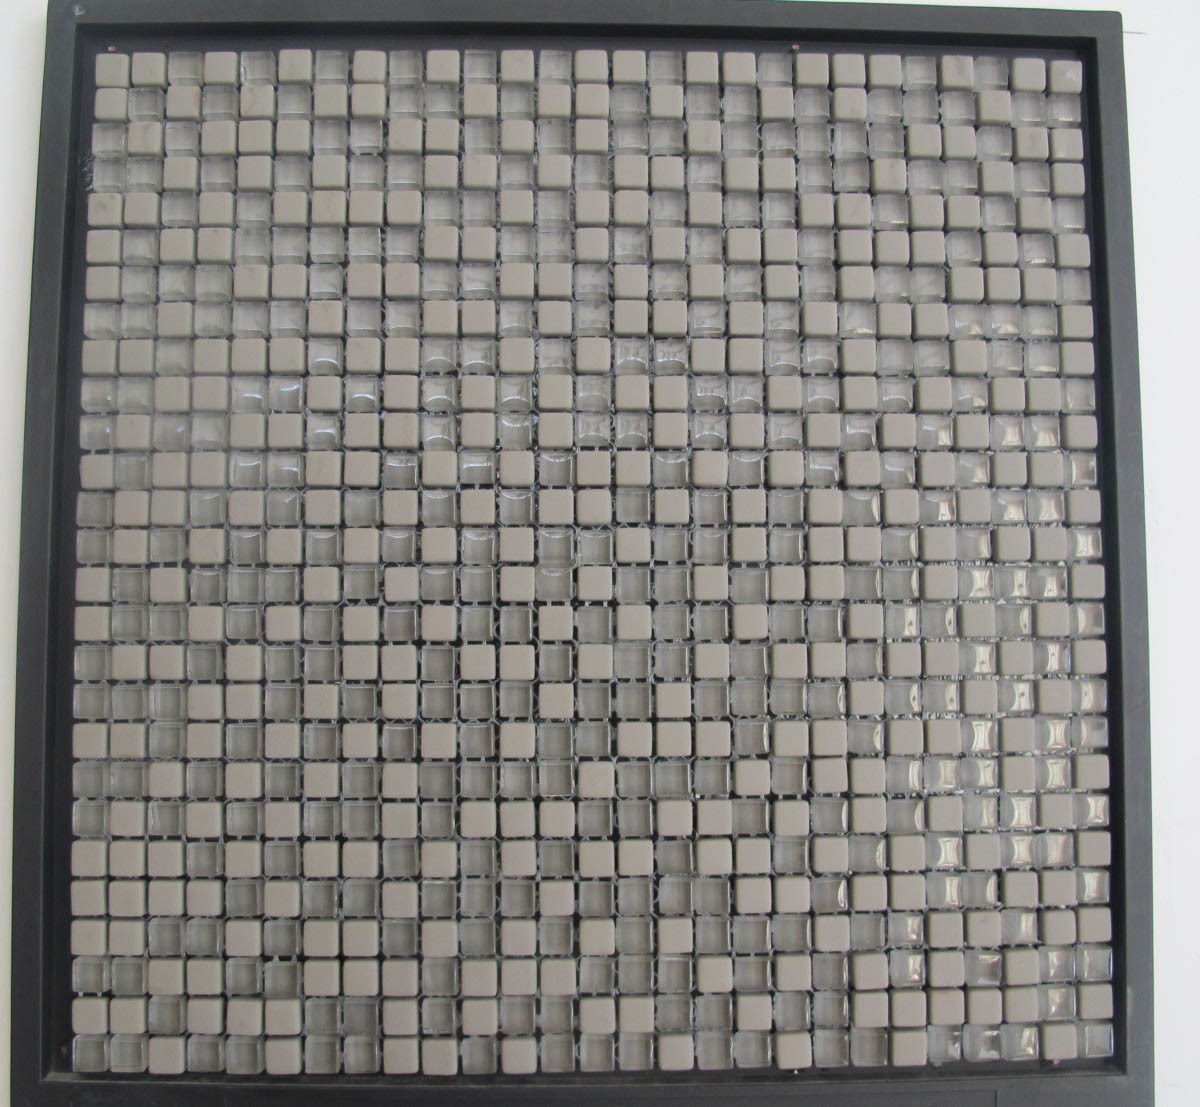 mosaic - foshan colorgres building material co., ltd. - page 1.